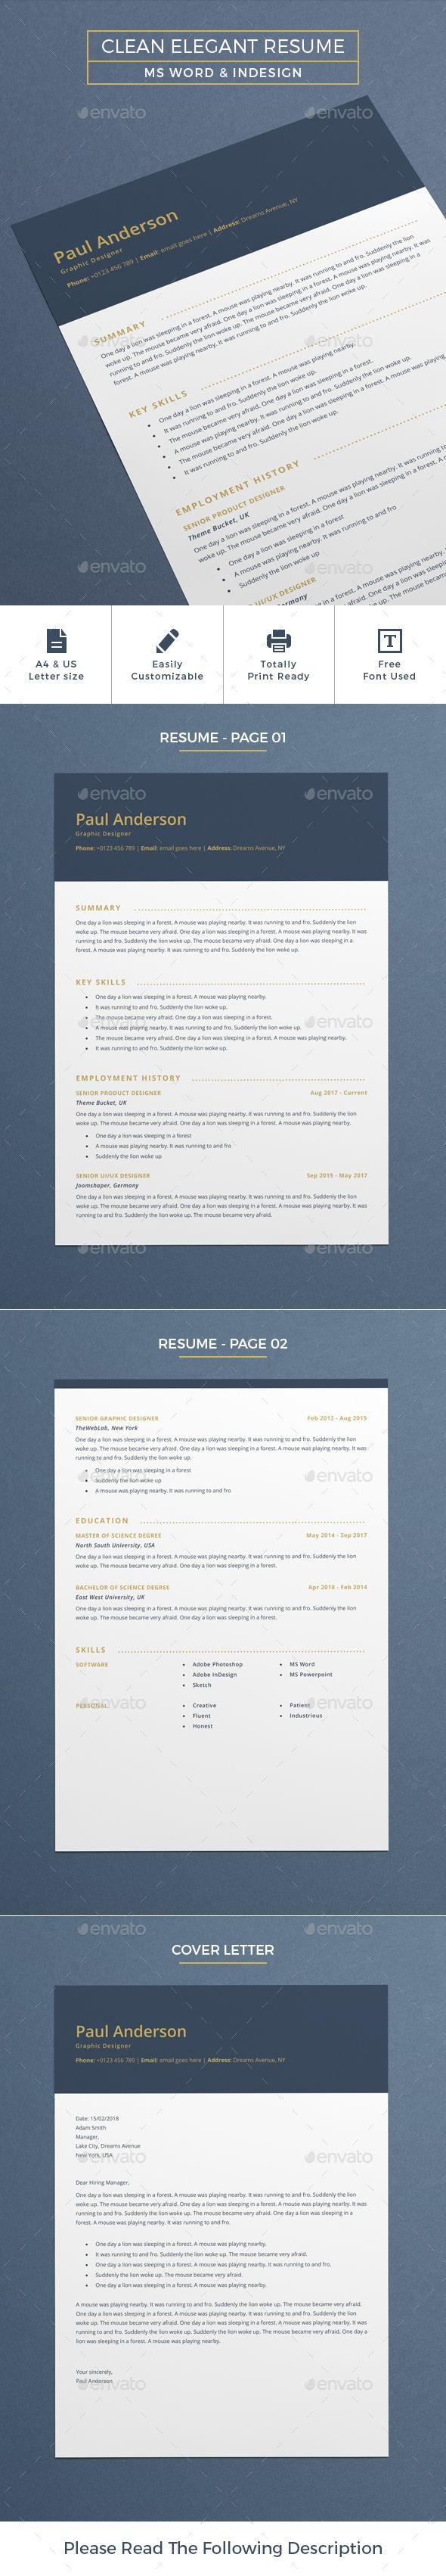 Clean Elegant Resume  One Day Resume